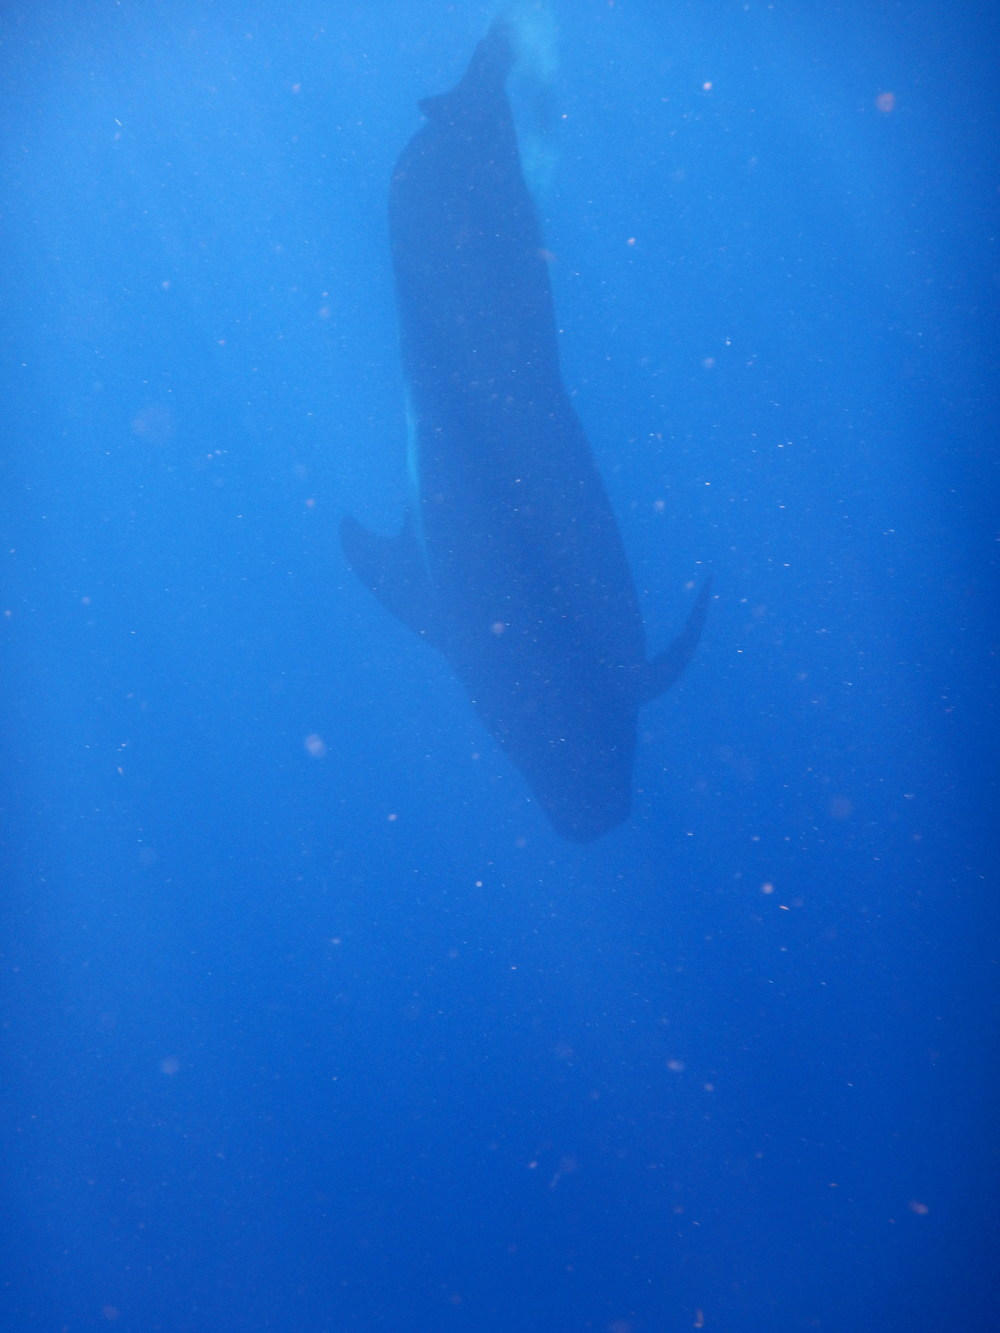 One of the many pilot whales we spotted today, just off the coast of Honduras.